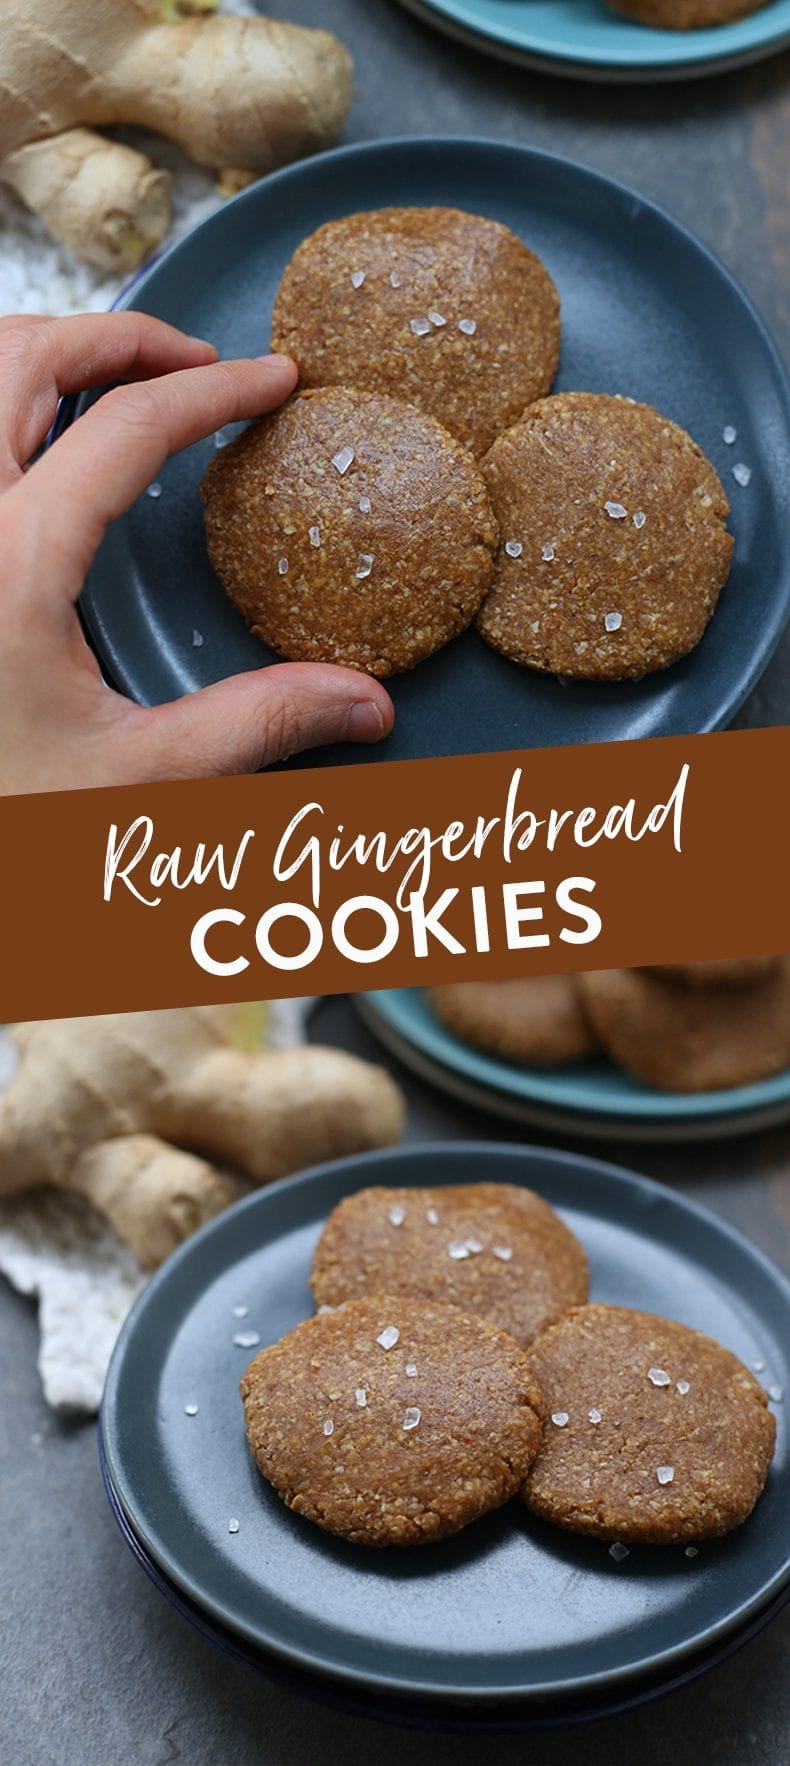 A simple and delicious recipe for Raw Gingerbread Cookies made with wholesome ingredients like dates and nuts. Better yet, there's no oven required! #raw #gingerbread #christmasrecipe